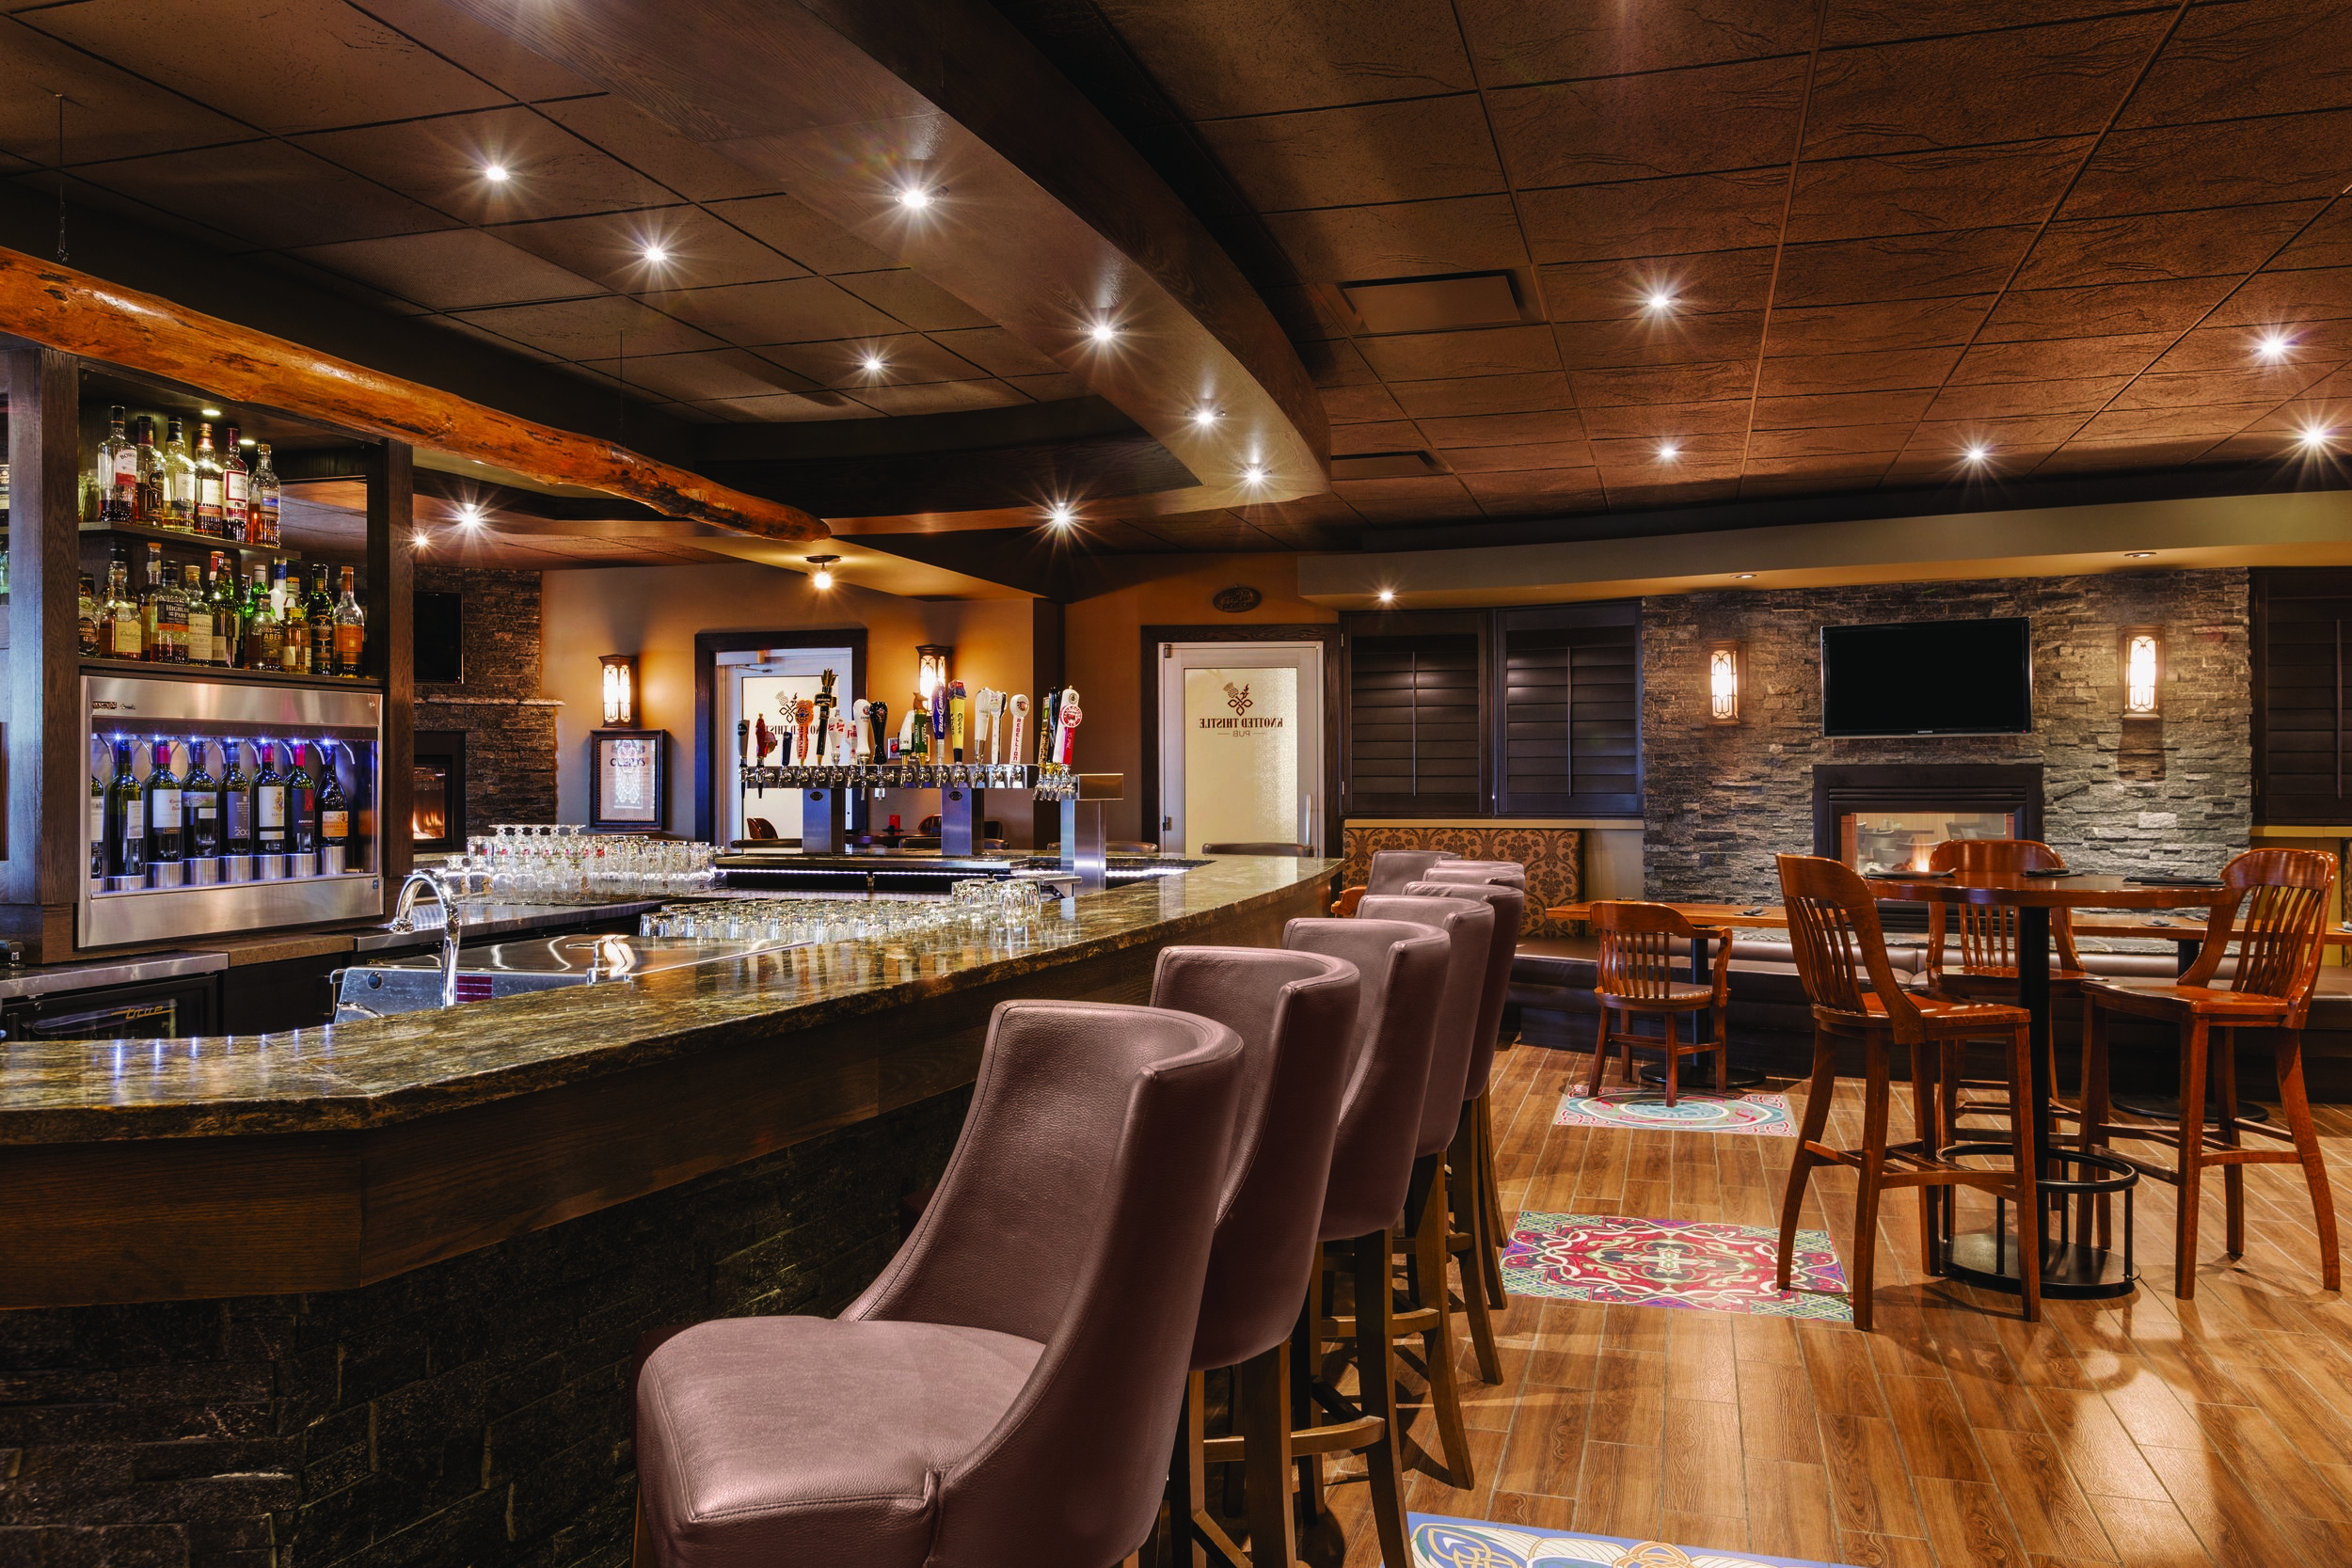 Knotted Thistle Pub - Bar Seating 2016 - Copy.jpg